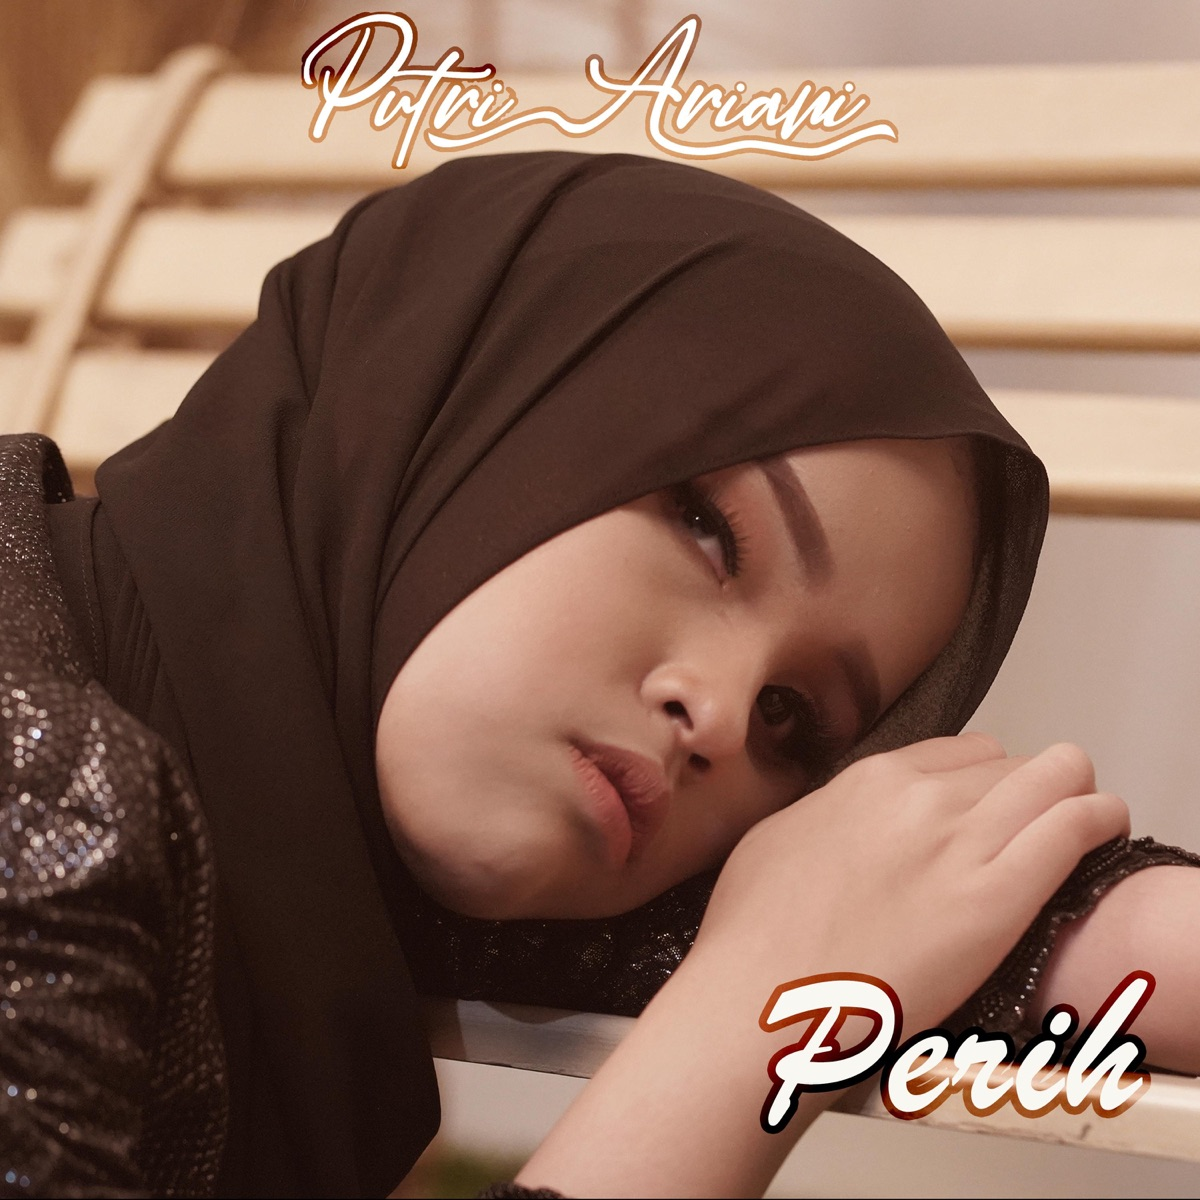 Download lagu Putri Ariani - Perih Mp3